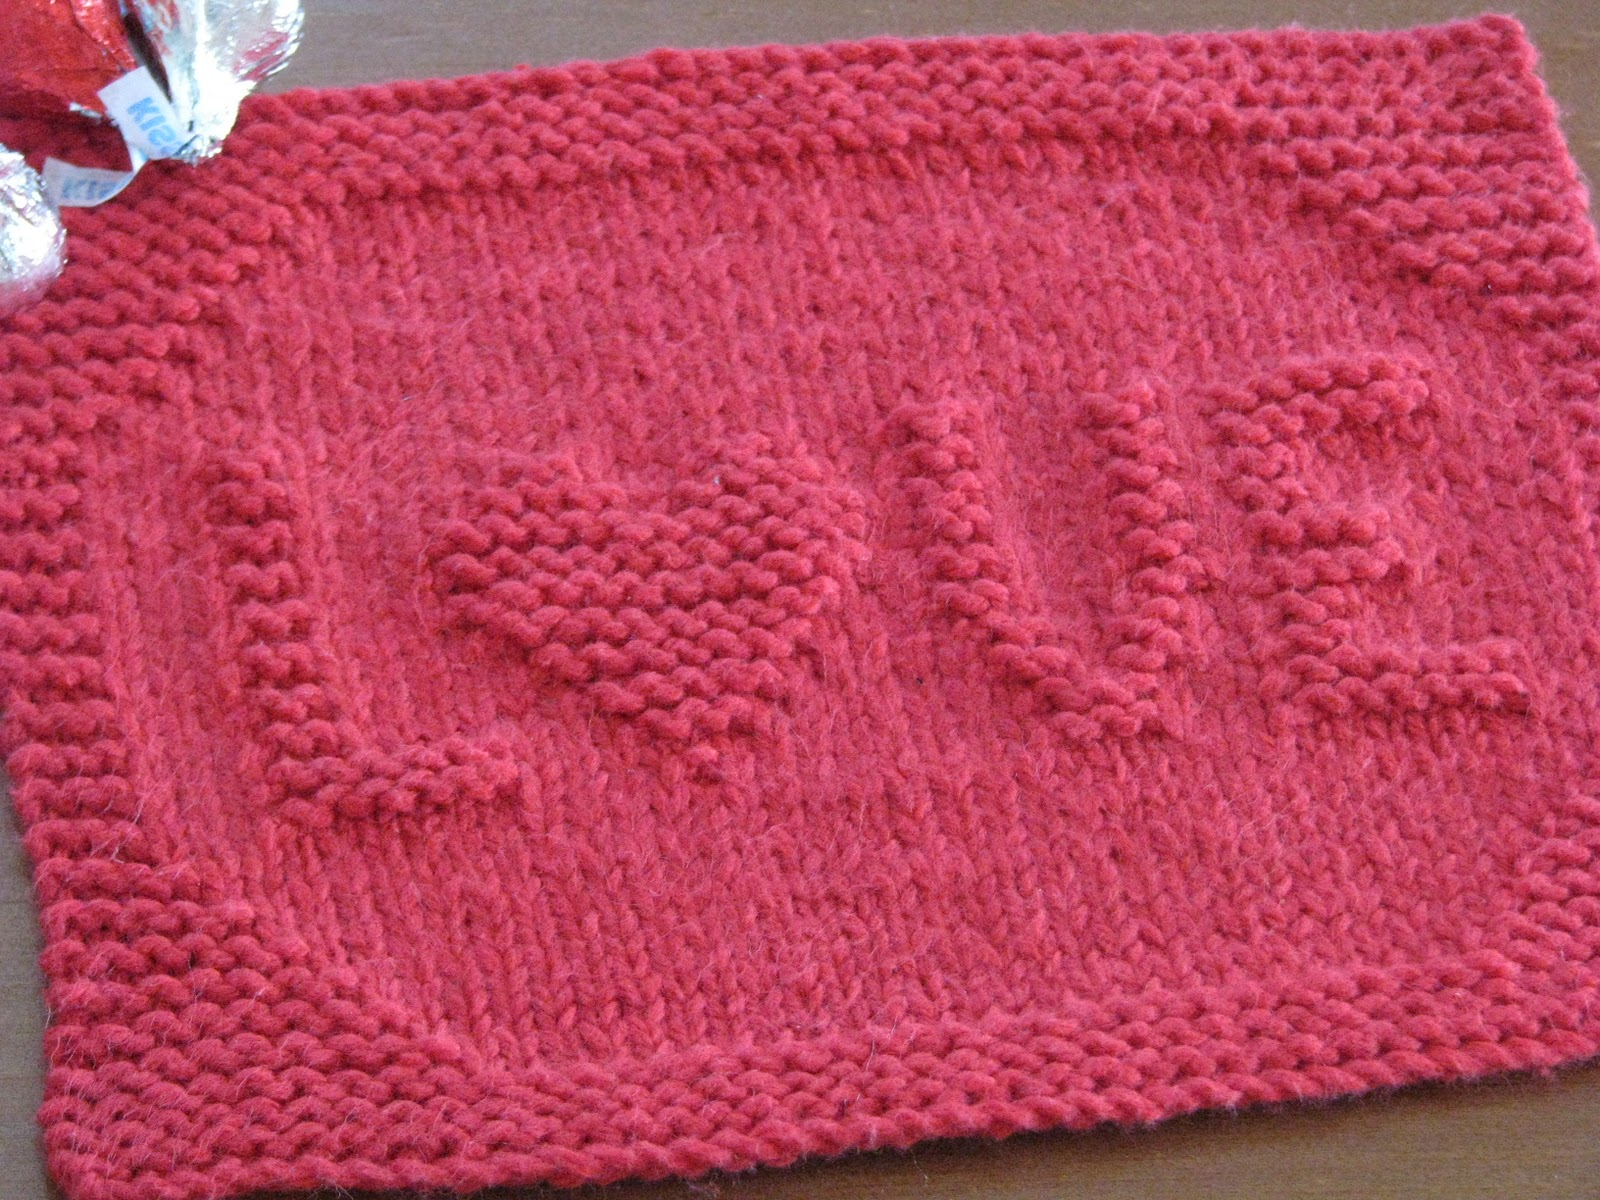 Dishcloth Knit Patterns Free : One Crafty Mama: LOVE Dishcloth